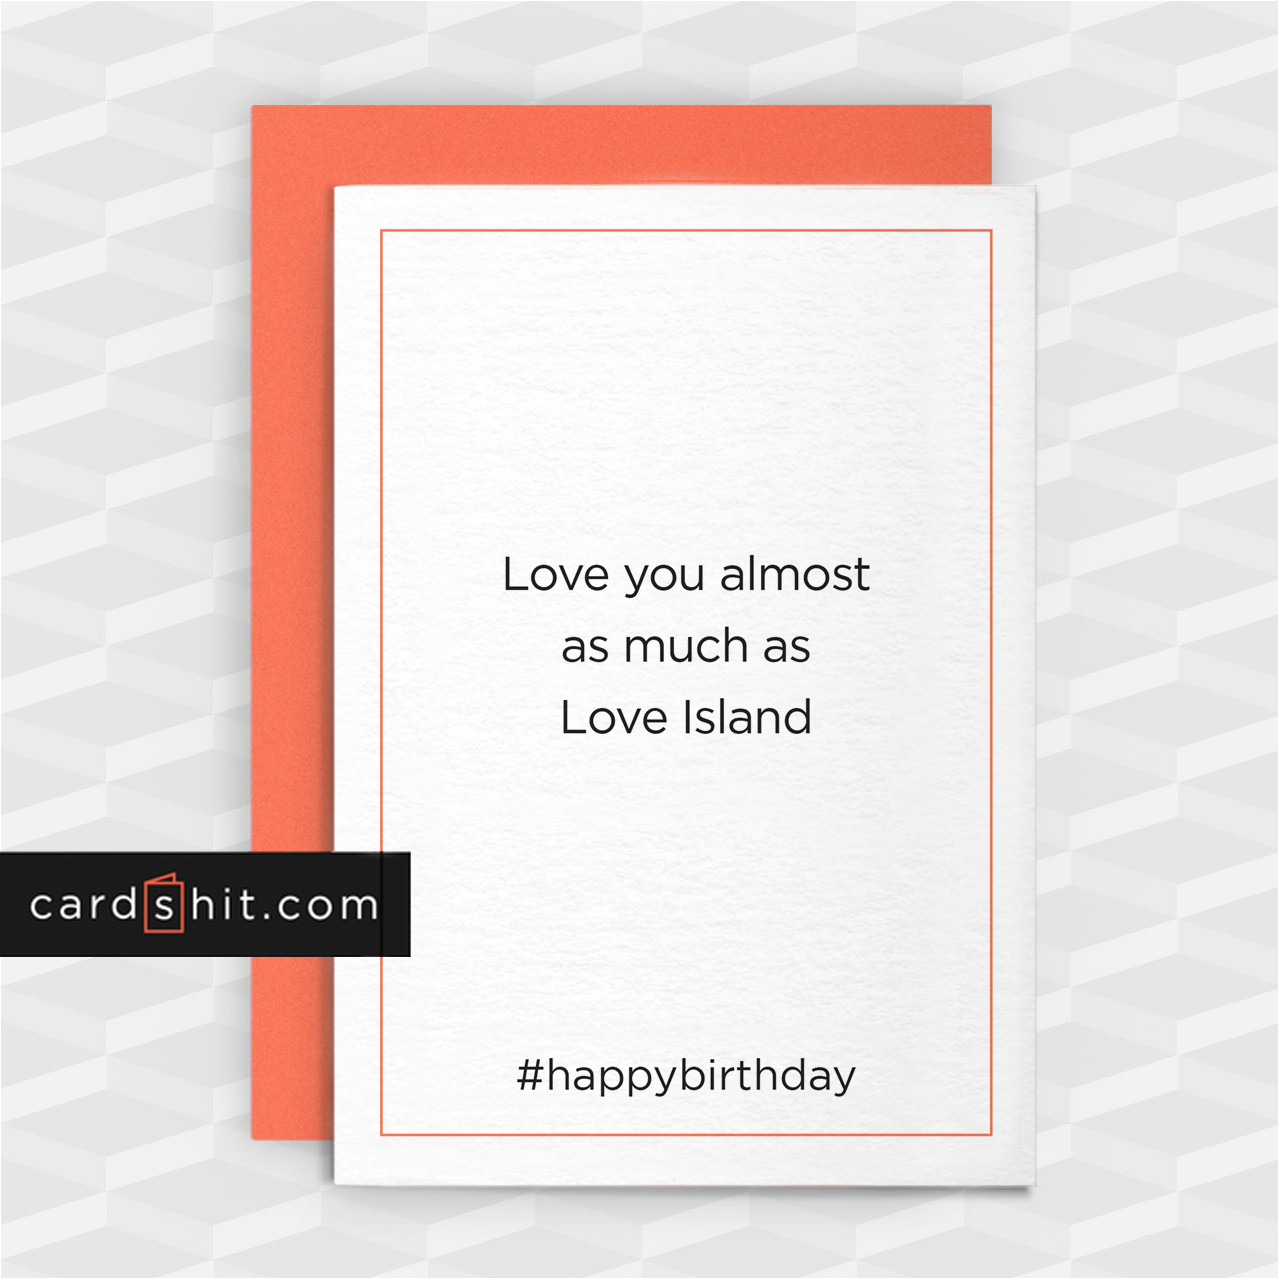 Greeting Cards Birthday Love You Almost As Much Island Happybirthday